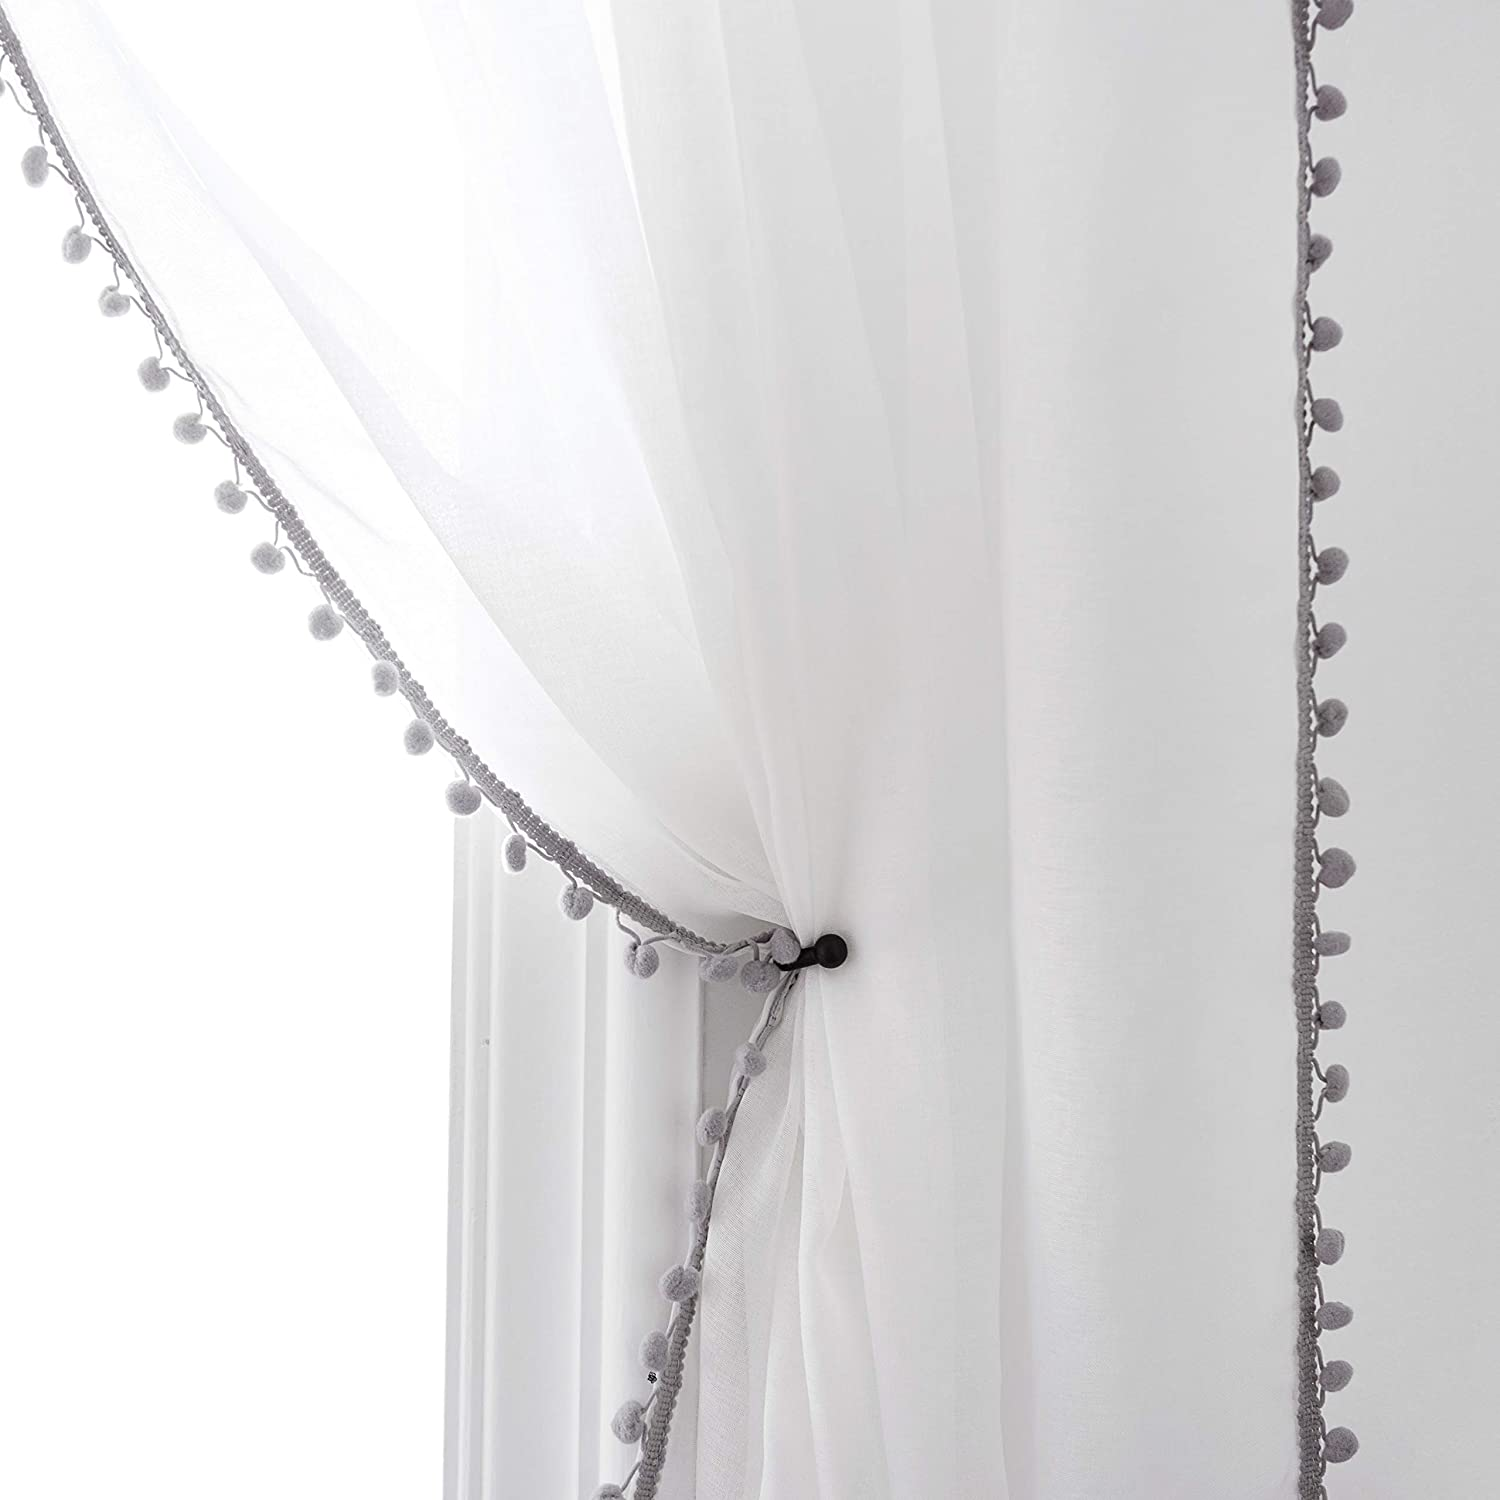 Selectex Linen Look Pom Pom Tasseled Sheer Curtains - Rod Pocket Voile Semi-Sheer Curtains for Living and Bedroom, Set of 2 Curtain Panels (52 x 108 inch, White Sheer & Gray Pom Poms)